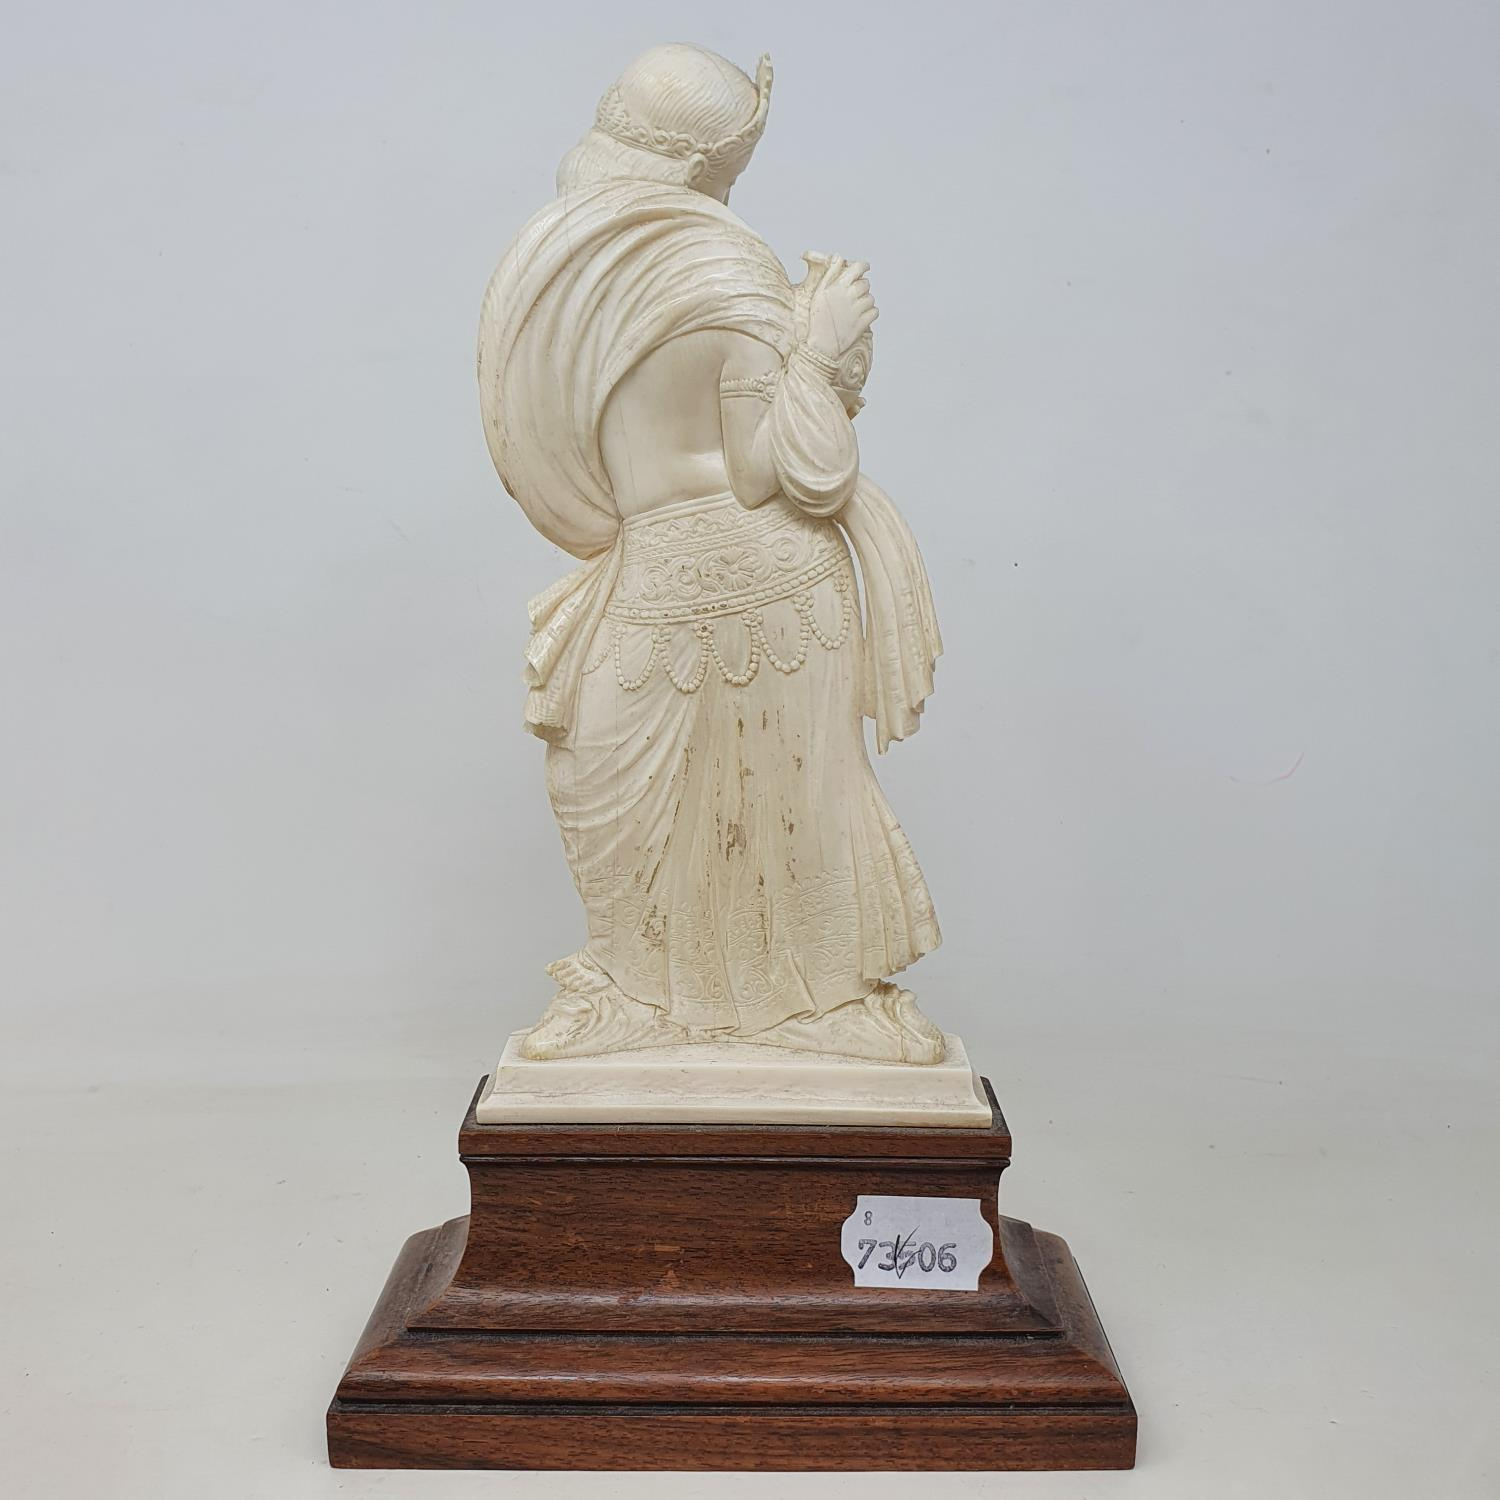 An early 20th century Indian carved ivory figure, of a woman holding a vase, on a wooden base, 28 cm - Image 3 of 4